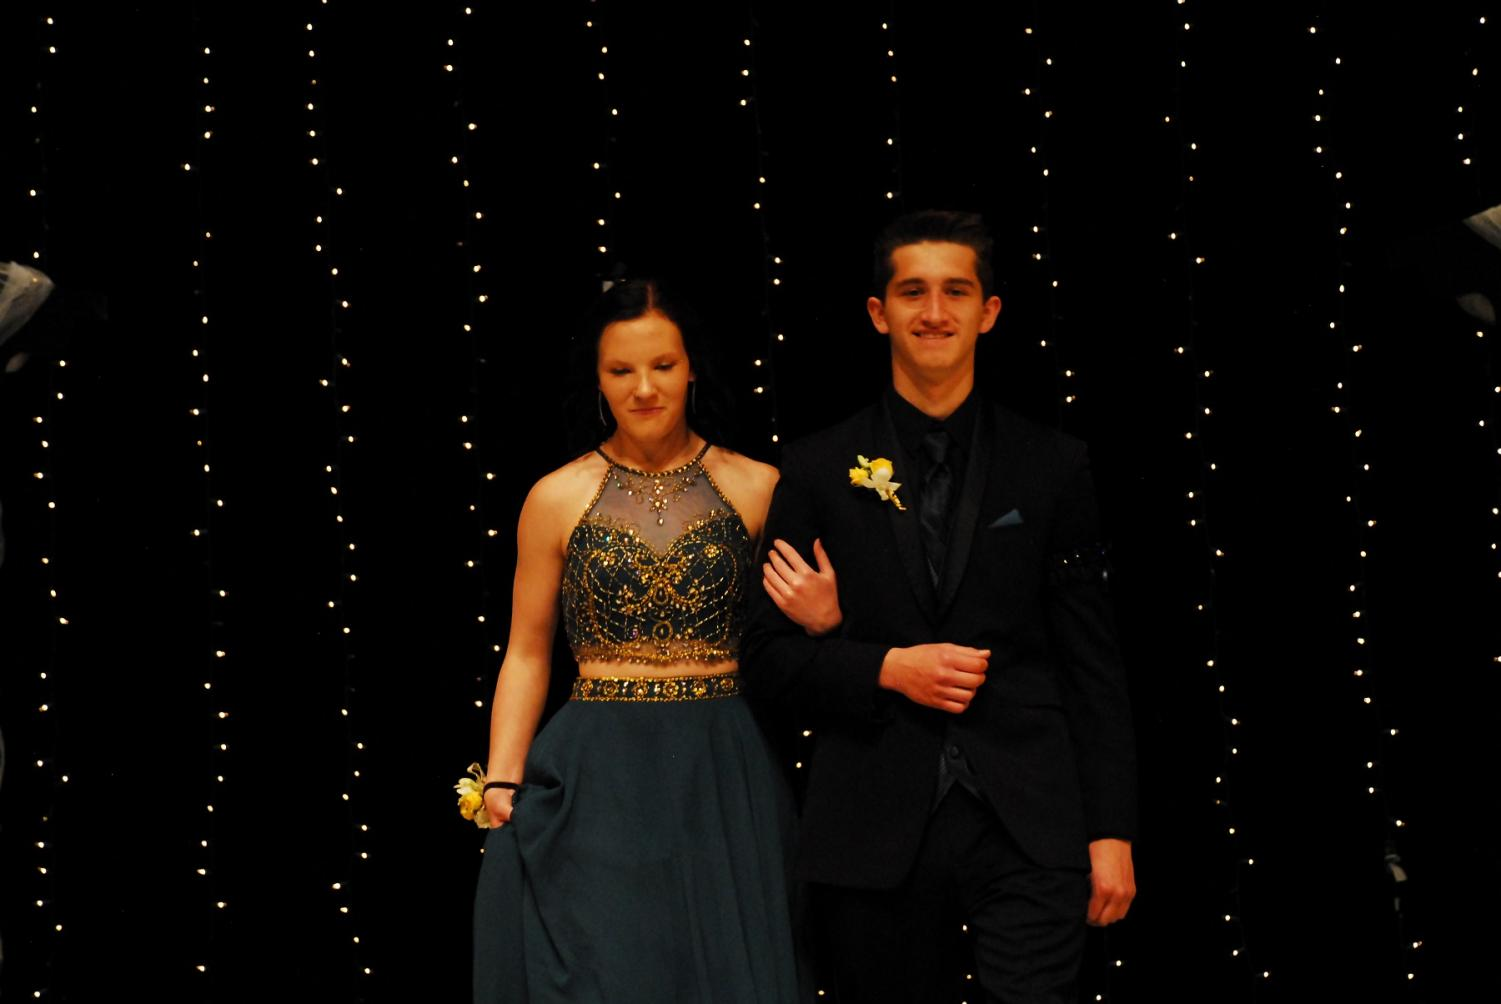 Julia Jarvi and Vince Davisson at grand march